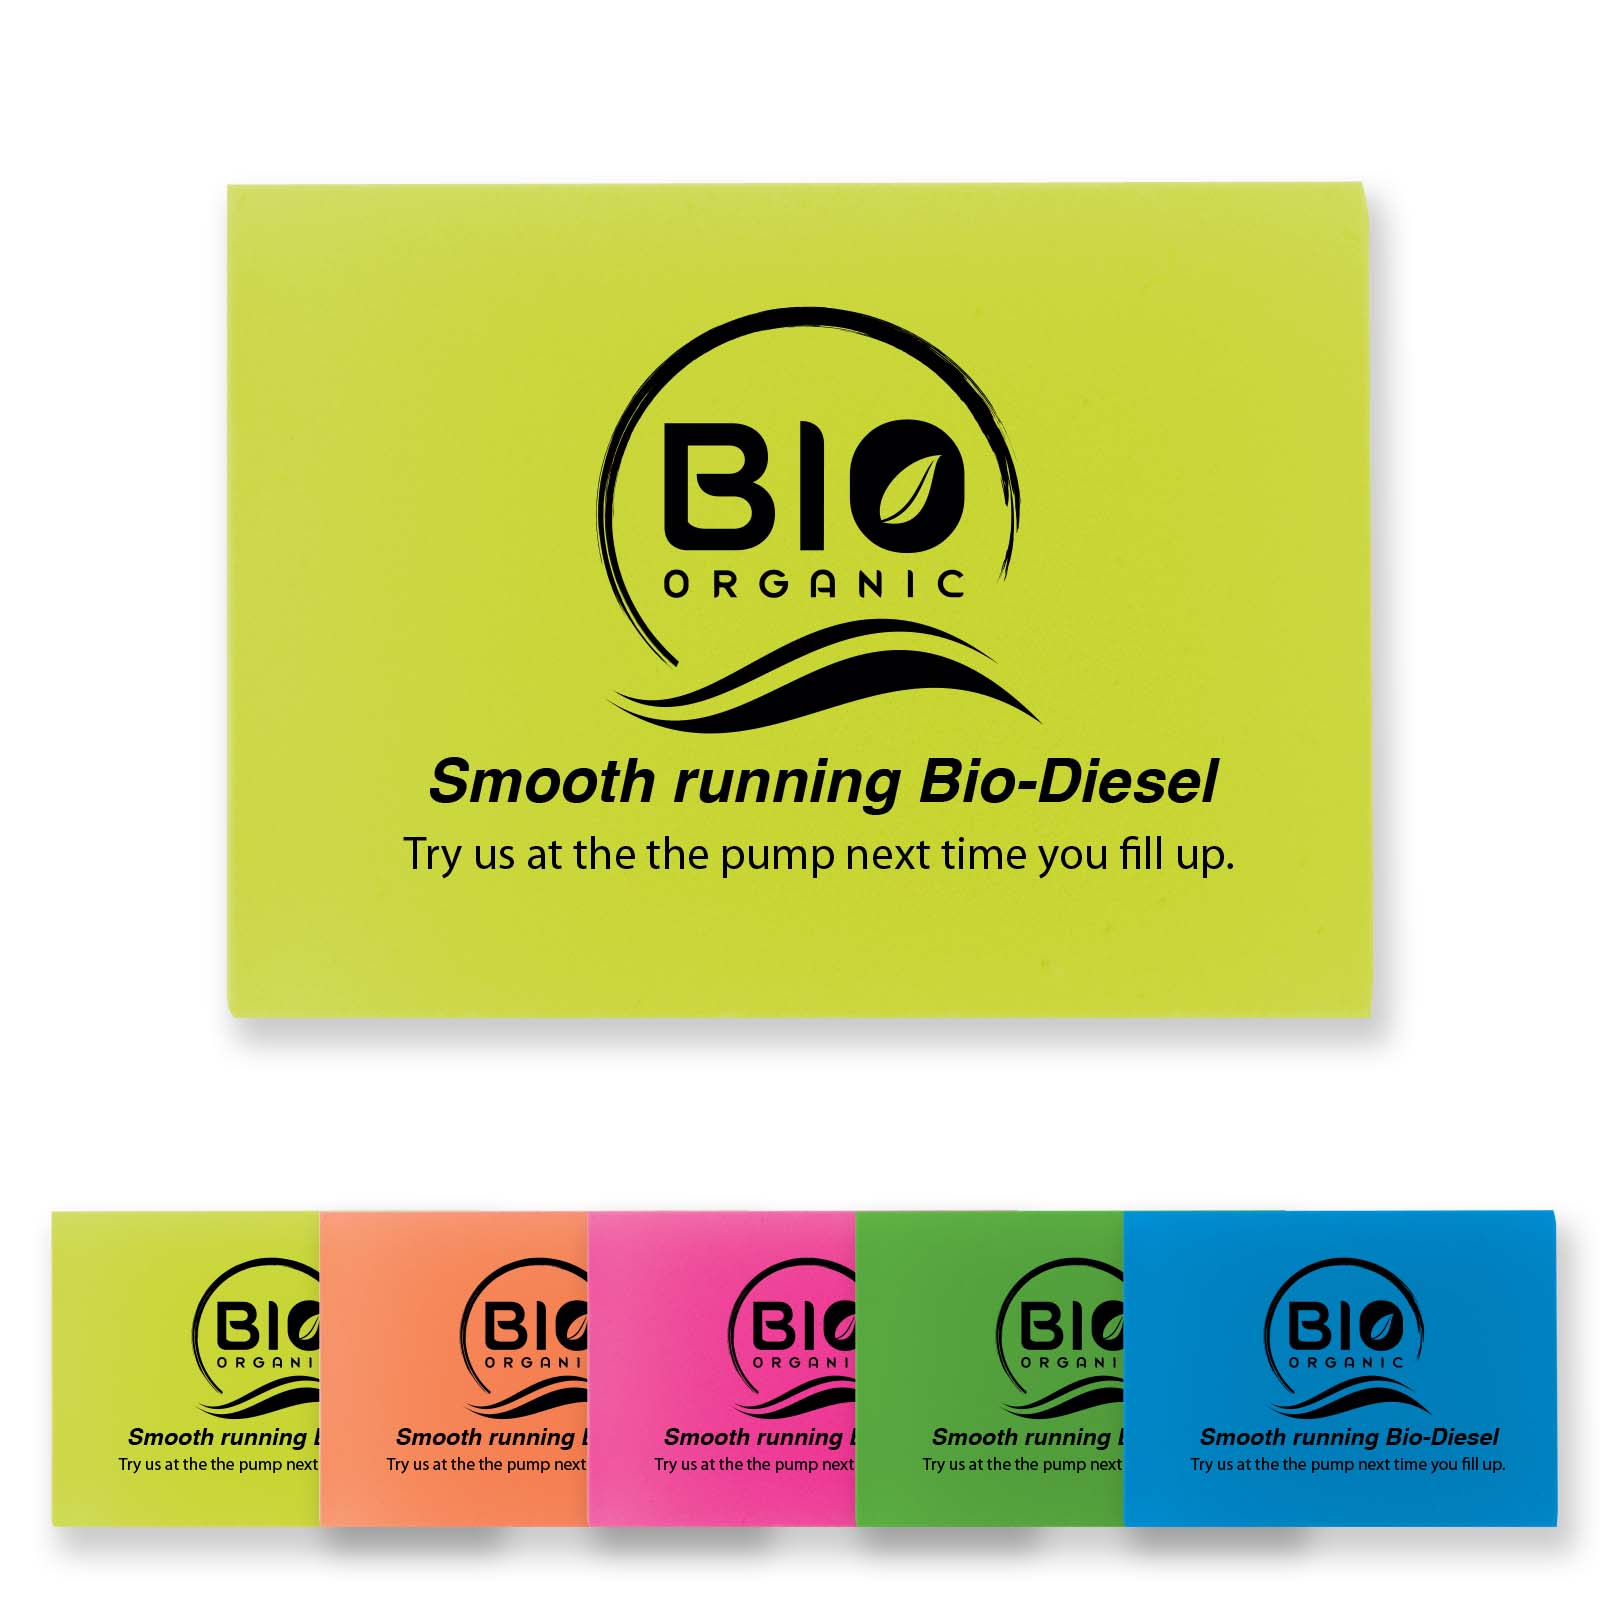 Fluro Rectangular Eraser - Includes a 1 colour printed logo